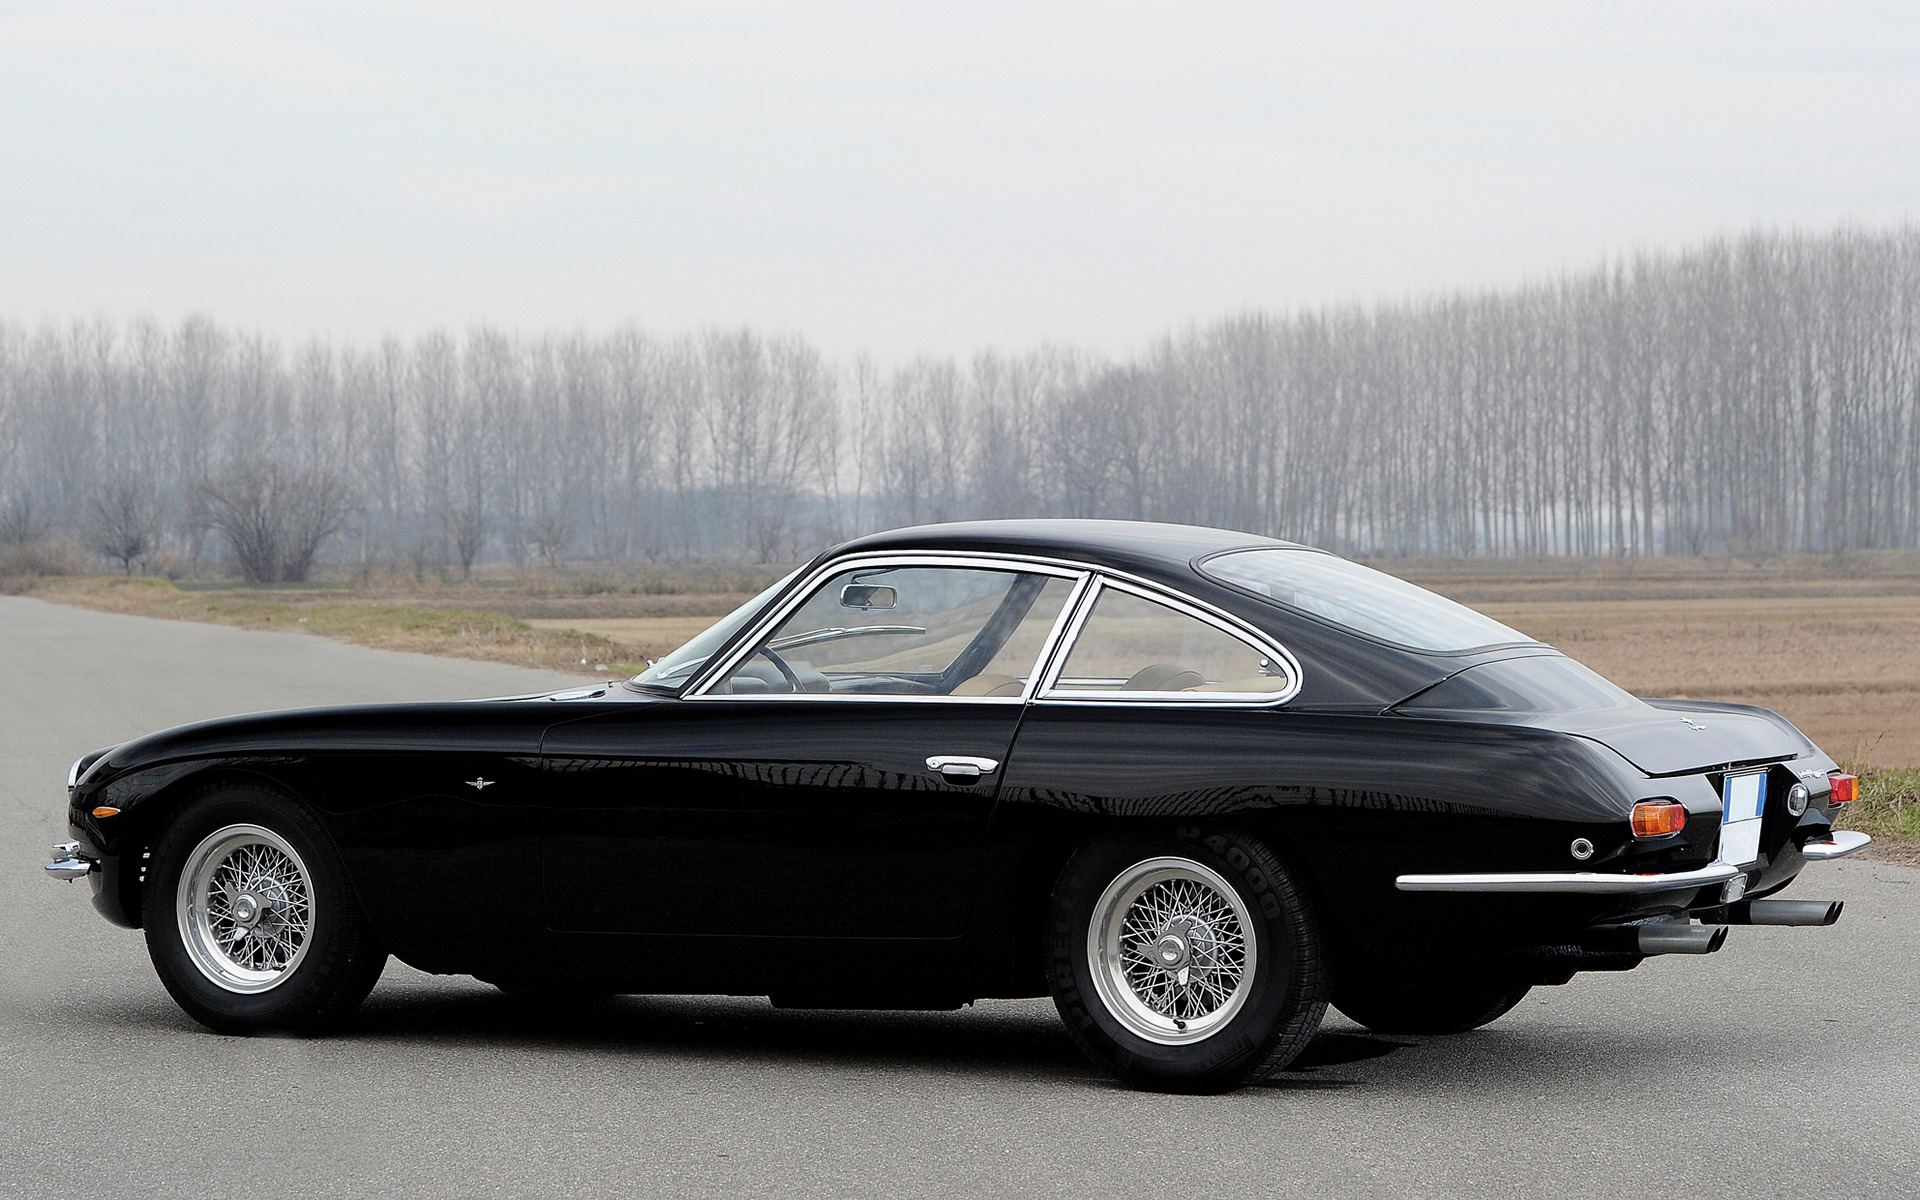 Lamborghini 400 GT 2+2 (1966) Wallpapers and HD Images ...